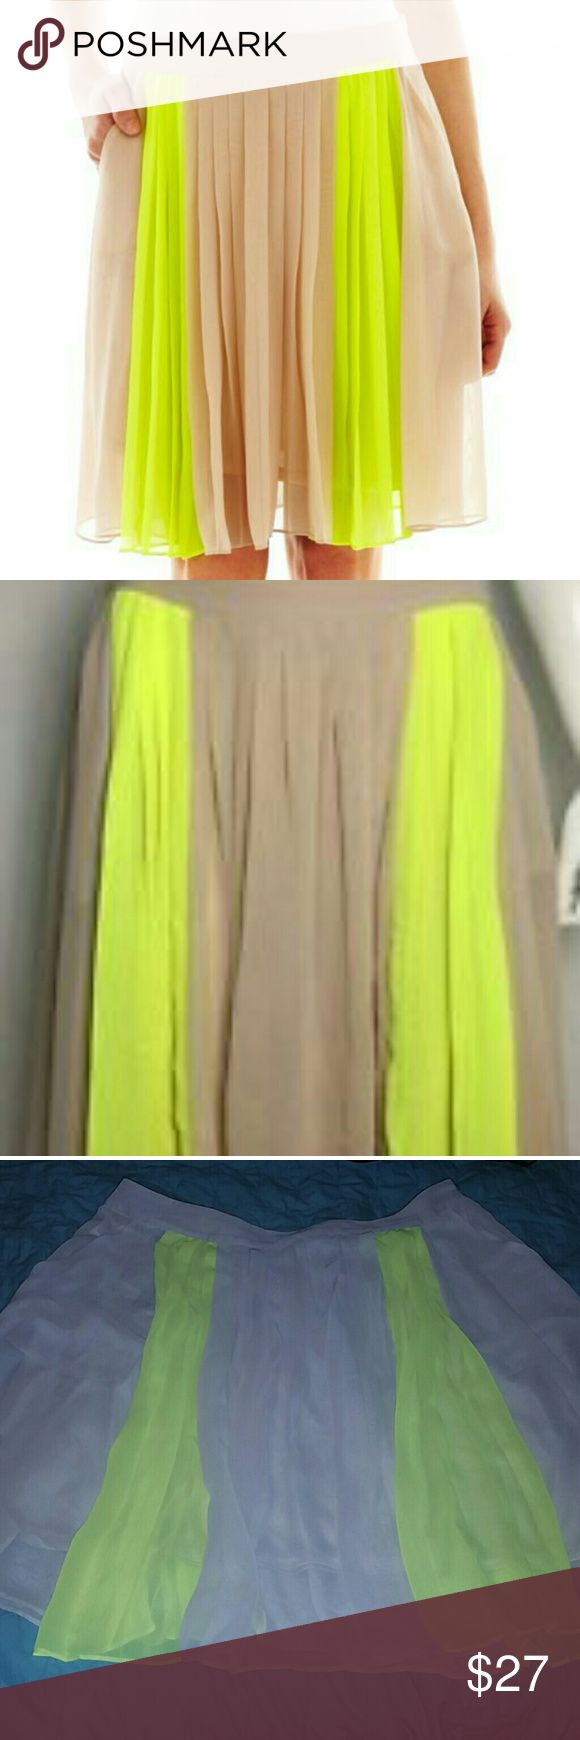 Worthington Pleated Neon Yellow Green/Cream Skirt Skirt Length: Close to Knee LengthFeatures: Pleated: KnitFabric Content: 100% PolyesterApparel Length: 22 : Machine Wash Cold with Pockets Flowy Style Sophisticated but Relaxing at the Sametime Worthington Skirts Circle & Skater